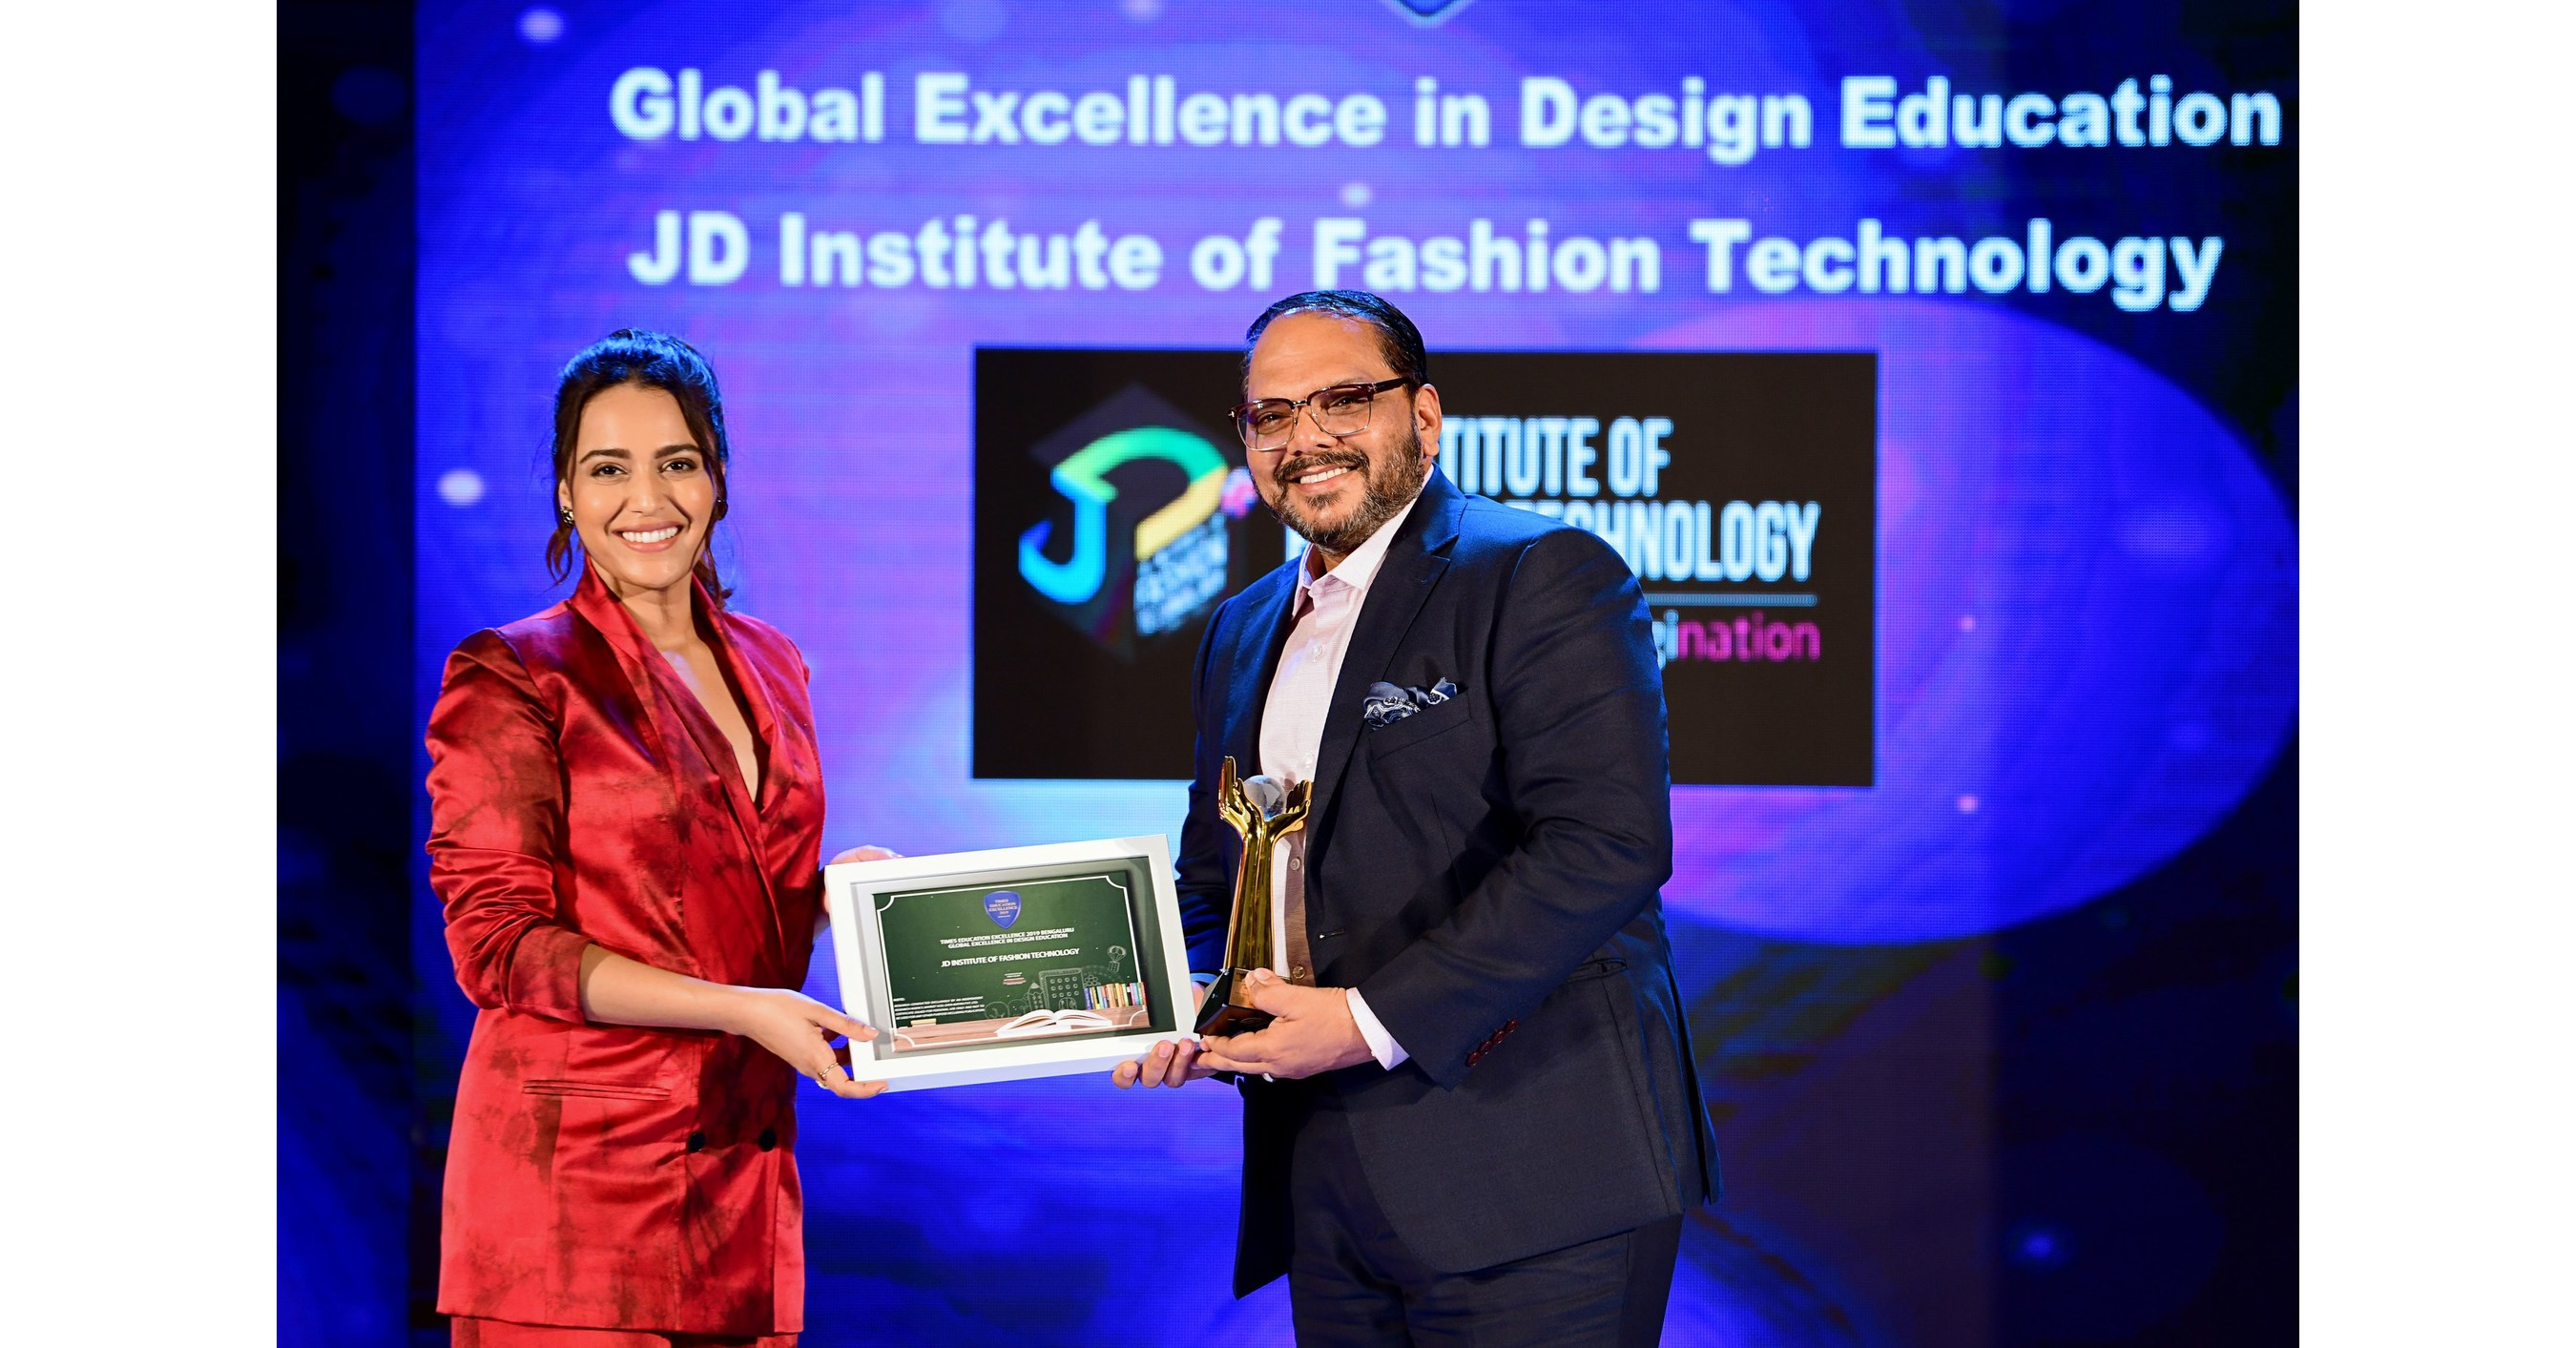 Jd Institute Receives Global Excellence In Design Education Award By Times